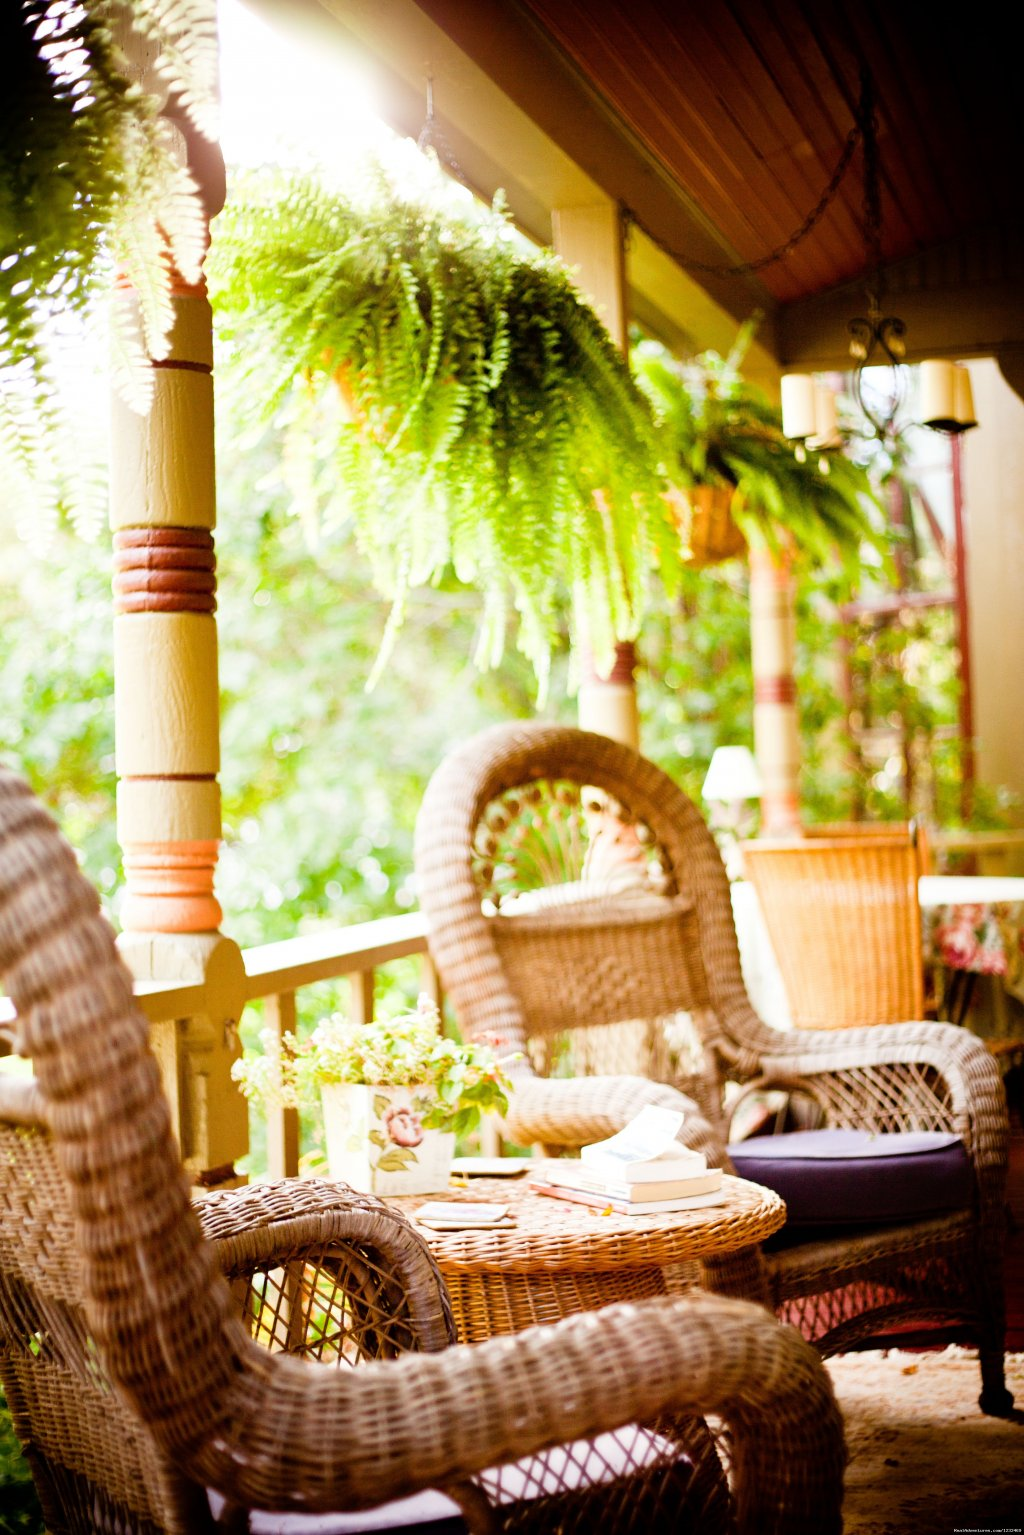 Relax On The Quaint Covered Porch | Image #4/9 | Apple Tree Lane B&B